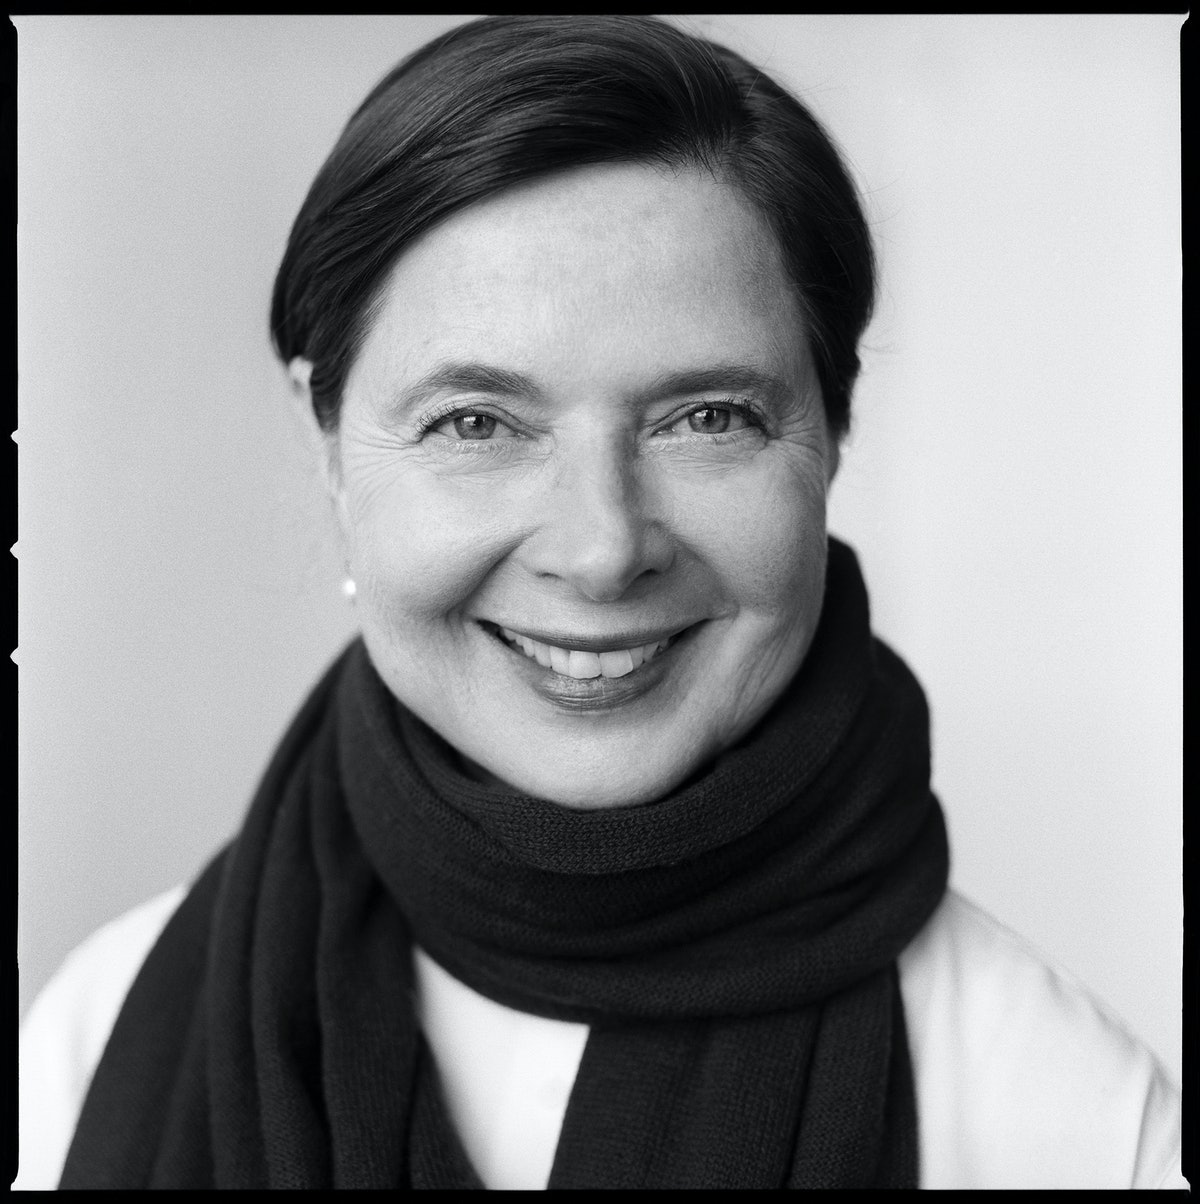 LACOMBE_17081_ISABELLA_ROSSELLINI_BL_4A_15_16_A_CHOICE_G.JPG